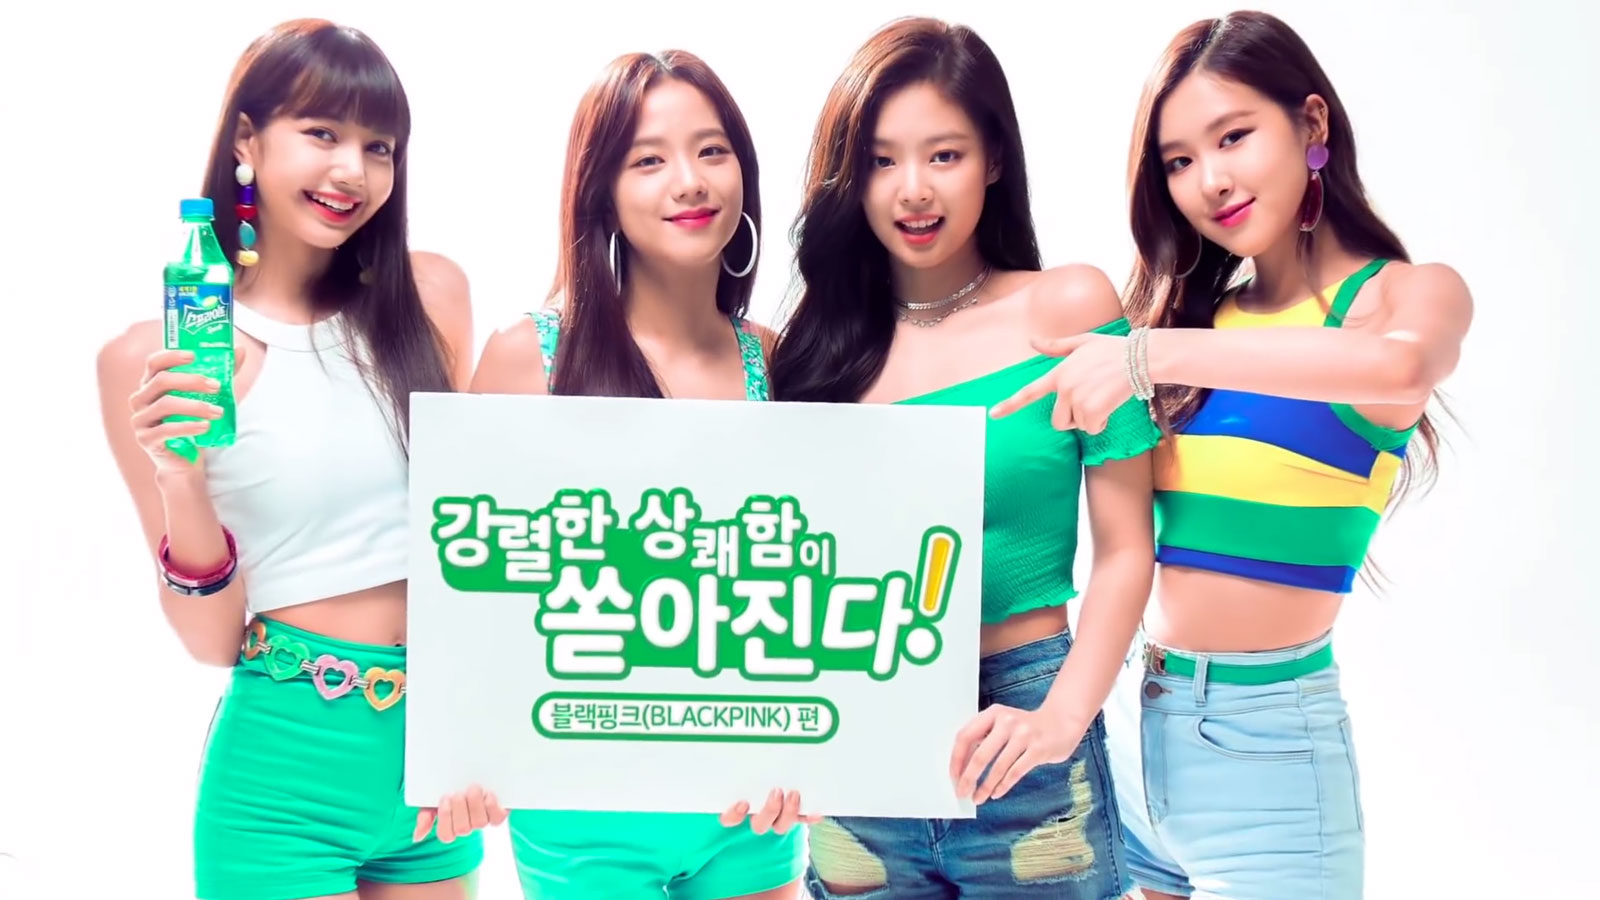 BLACKPINK SPRITE COMMERCIAL